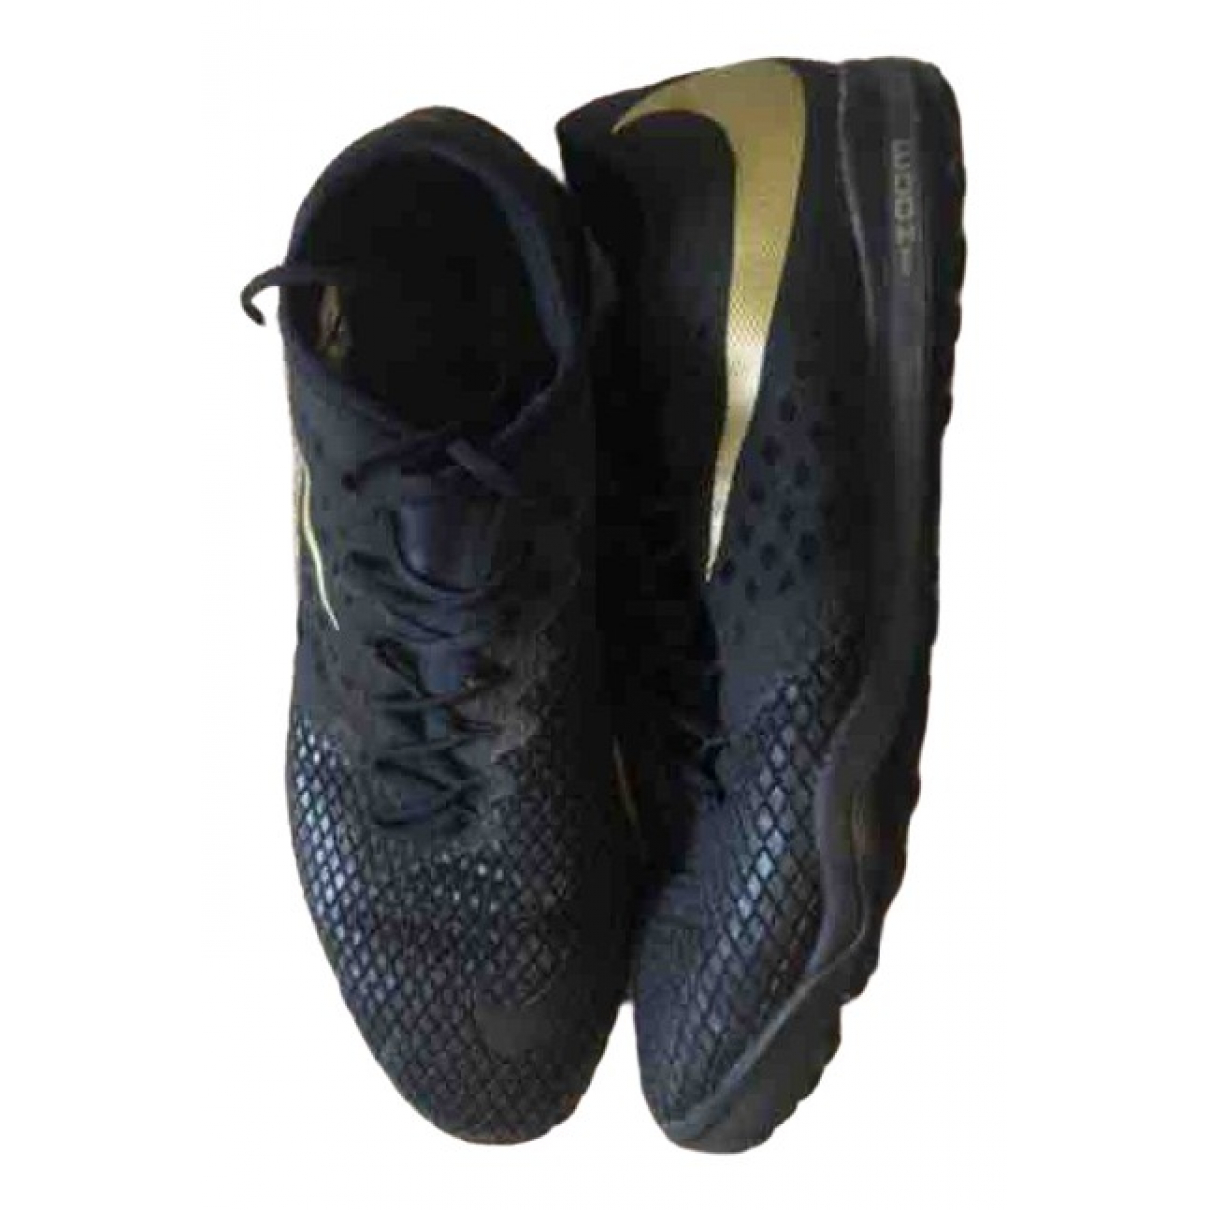 Nike \N Black Leather Boots for Men 11.5 UK